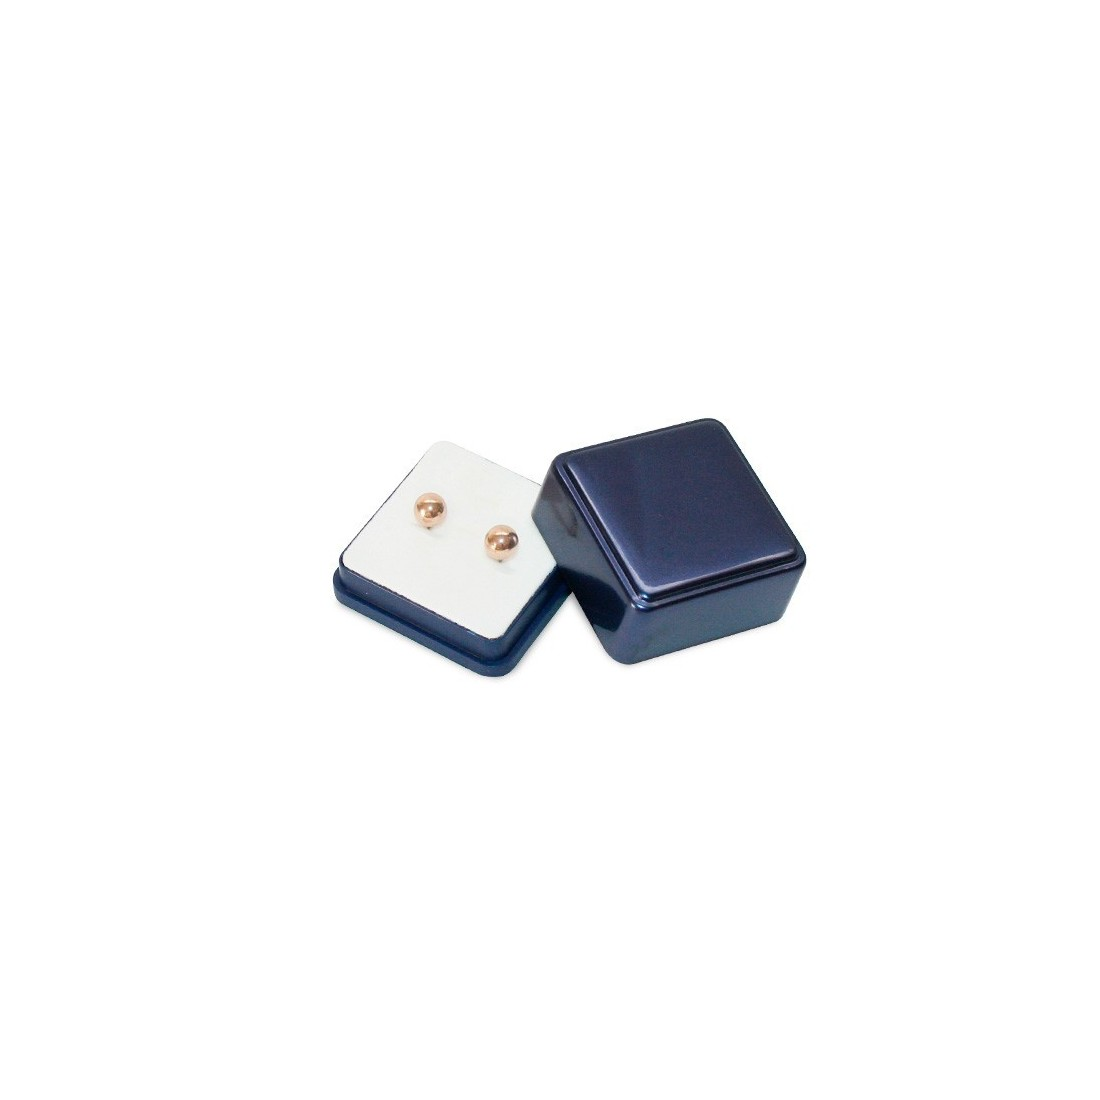 Plastic Jewellery Box, Earrings